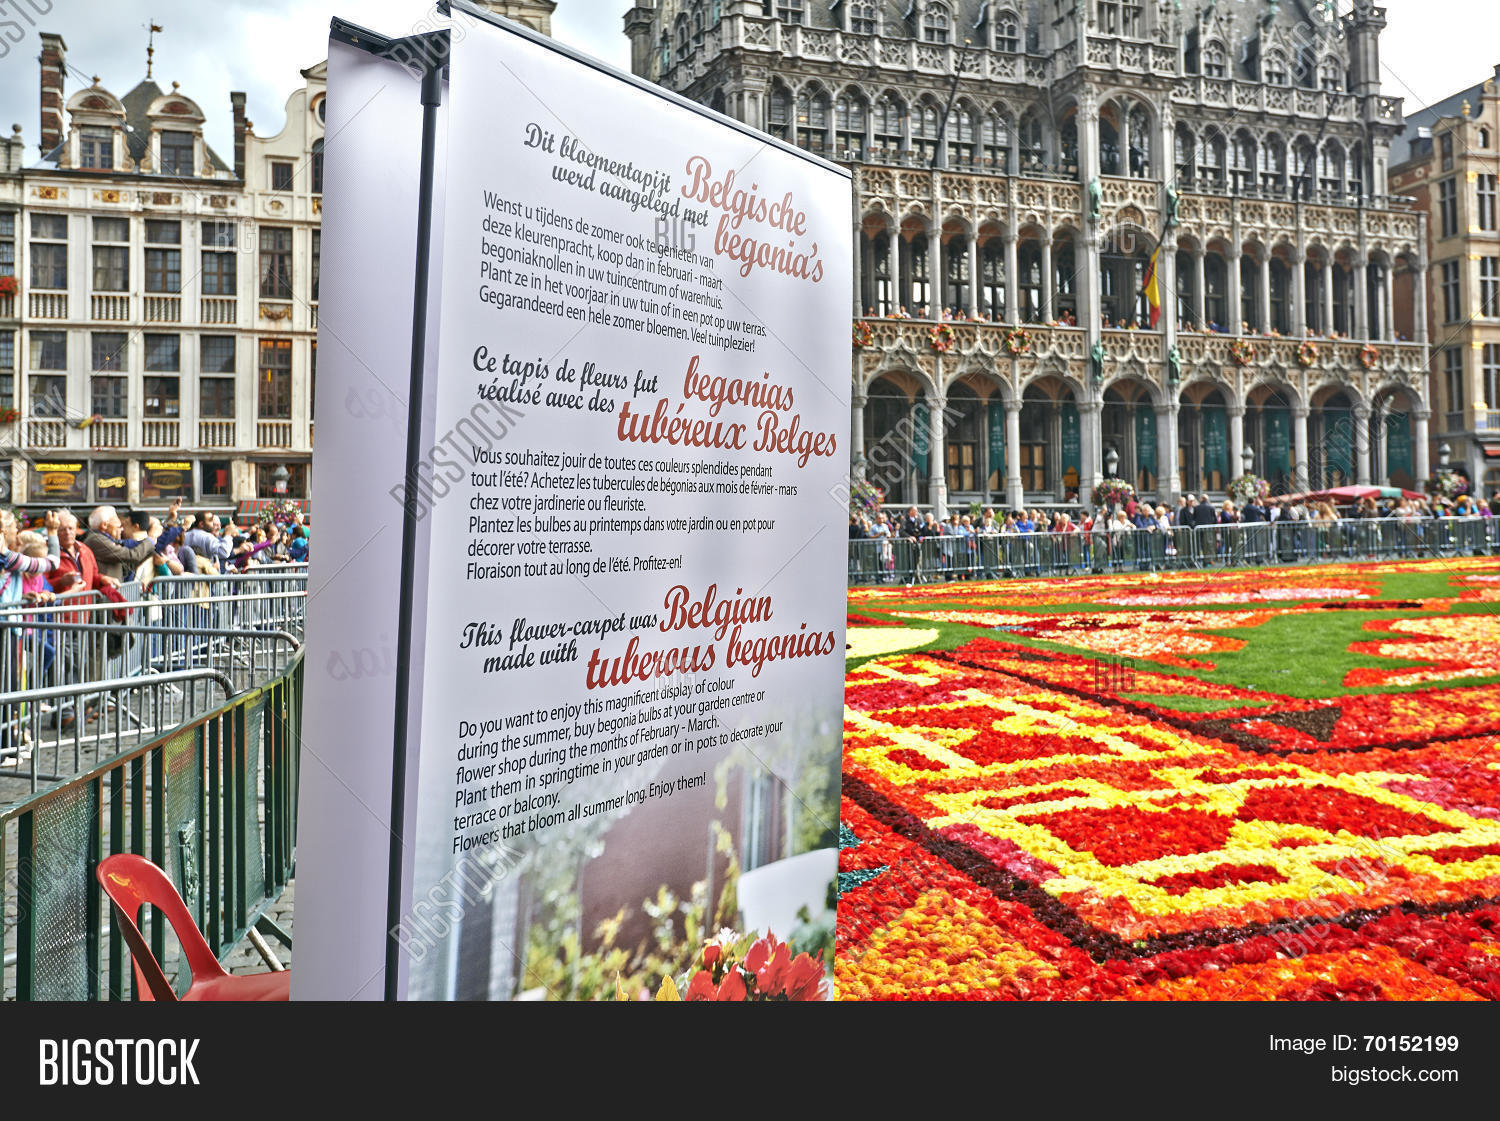 BRUSSELS BELGIUM - AUGUST 15: A giant carpet is made with 600000 begonia flowers within the celebrations of the 50th anniversary of Turkish workers' ...